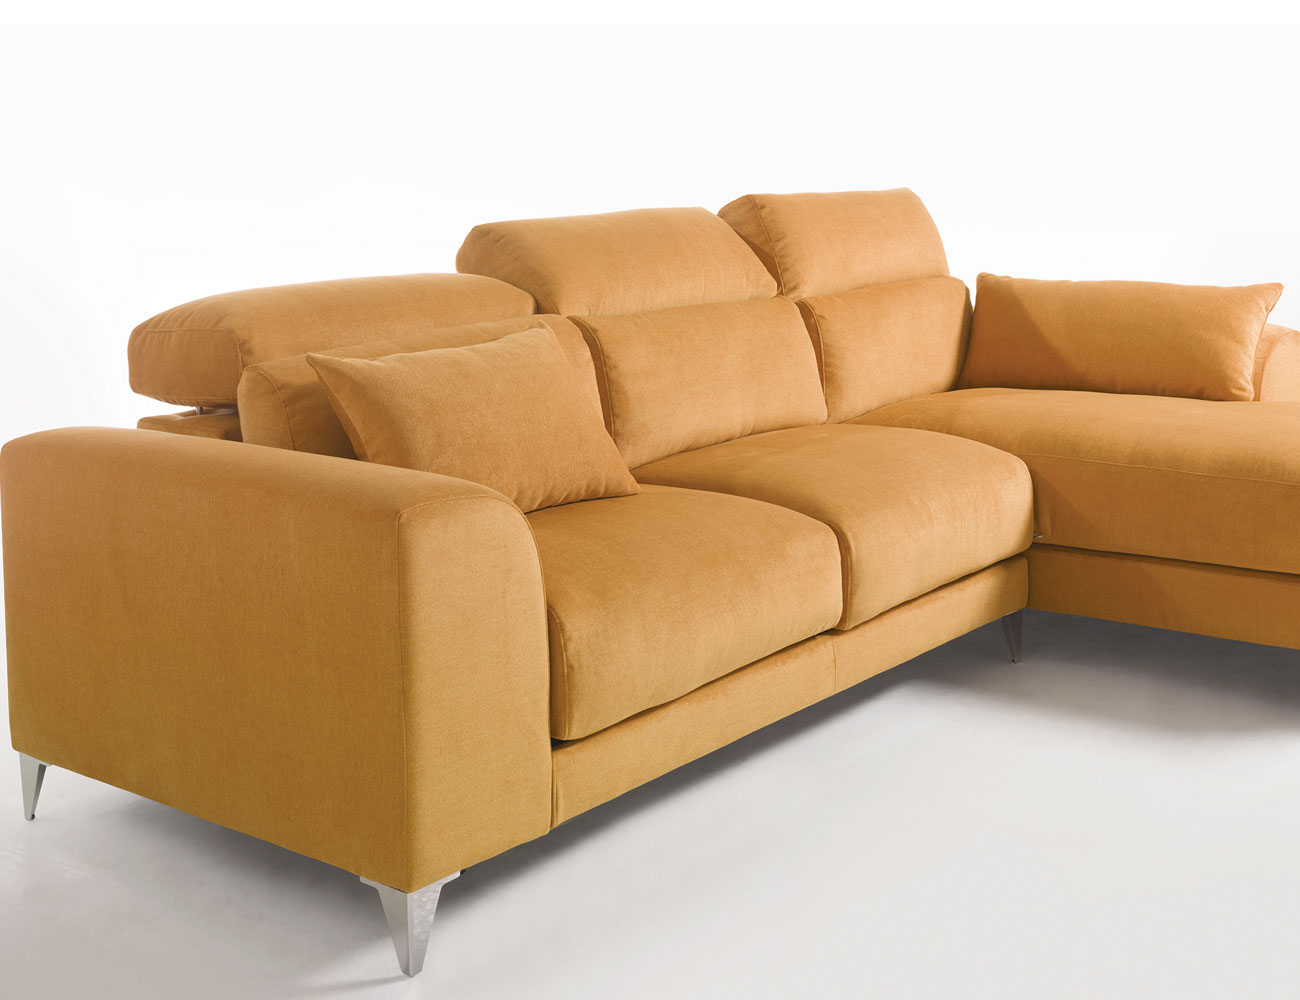 Sofa chaiselongue gran lujo decorativo patas altas amarillo 217